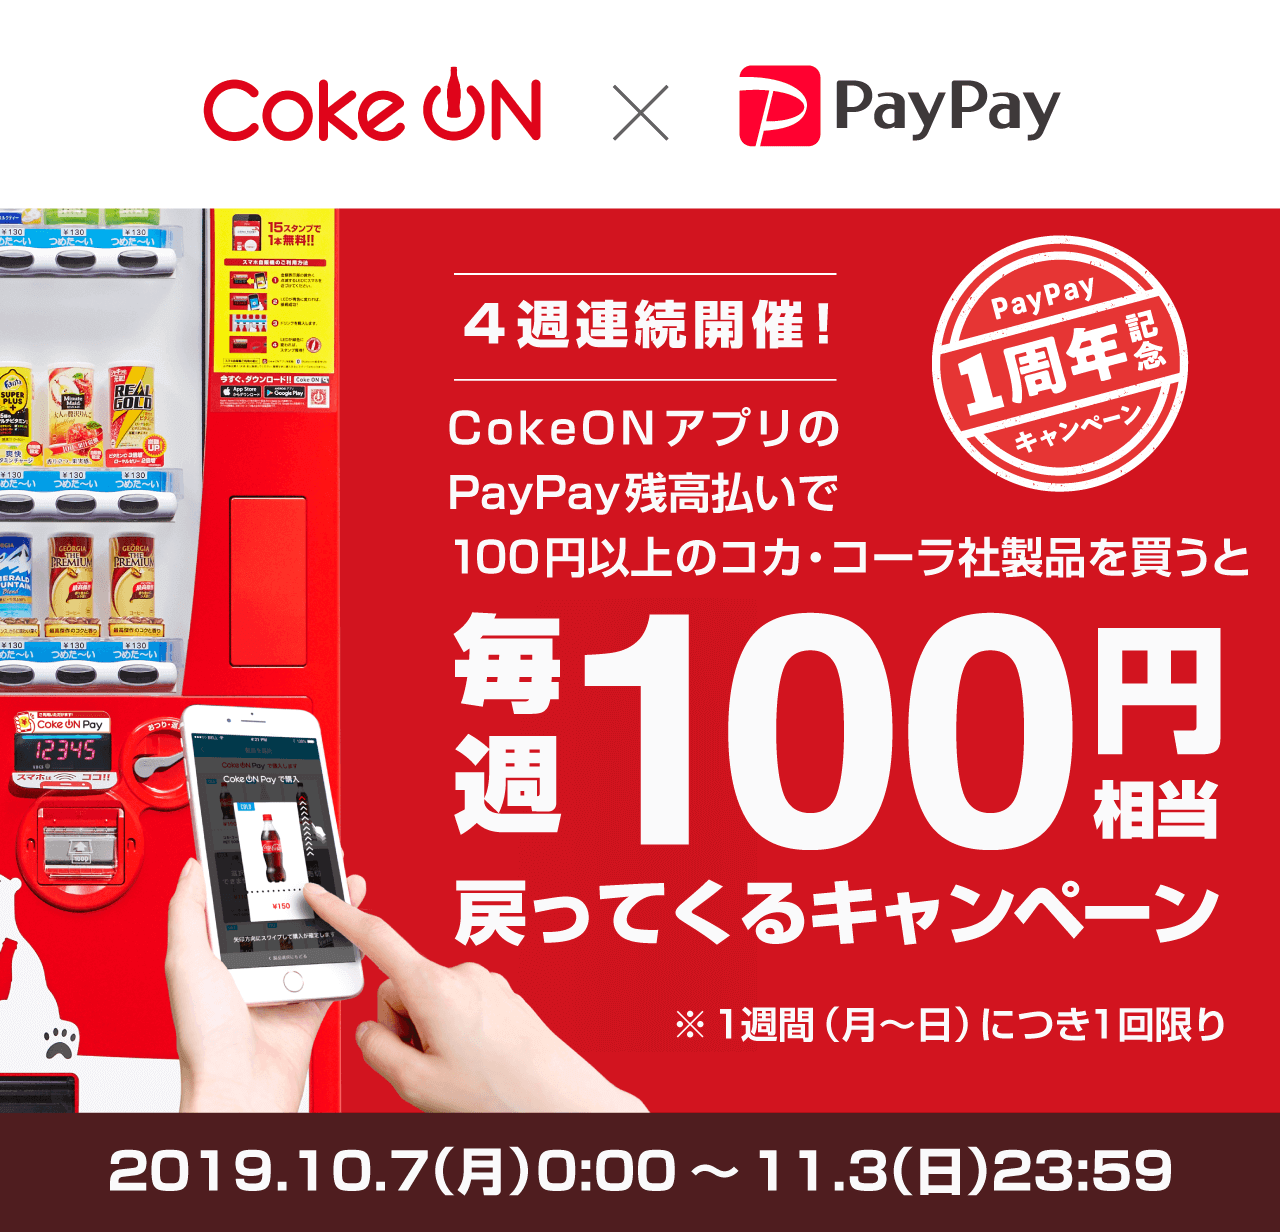 Coke ON×PayPay